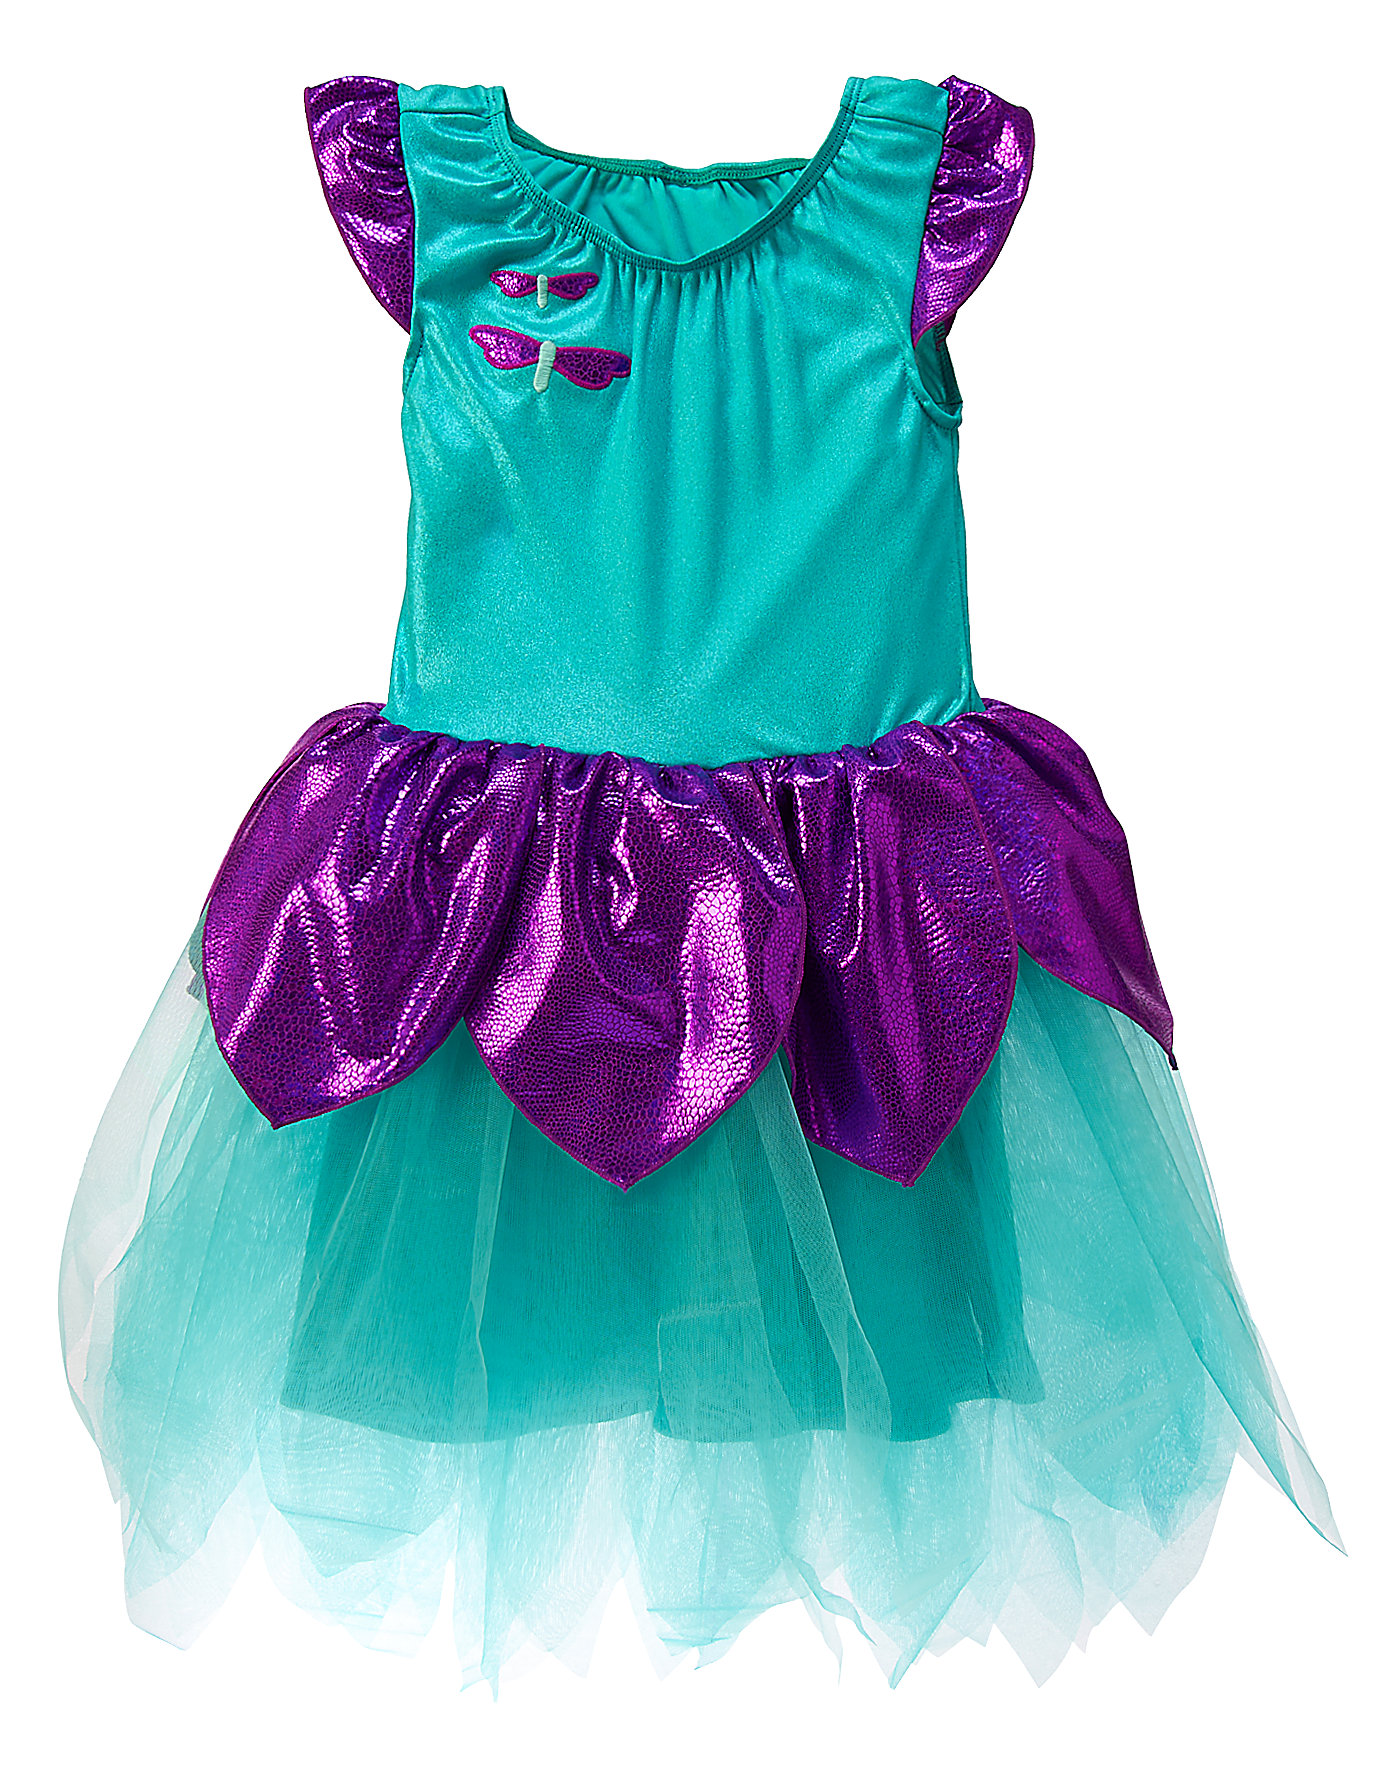 Adorable Halloween Costumes for Girls from Gymboree